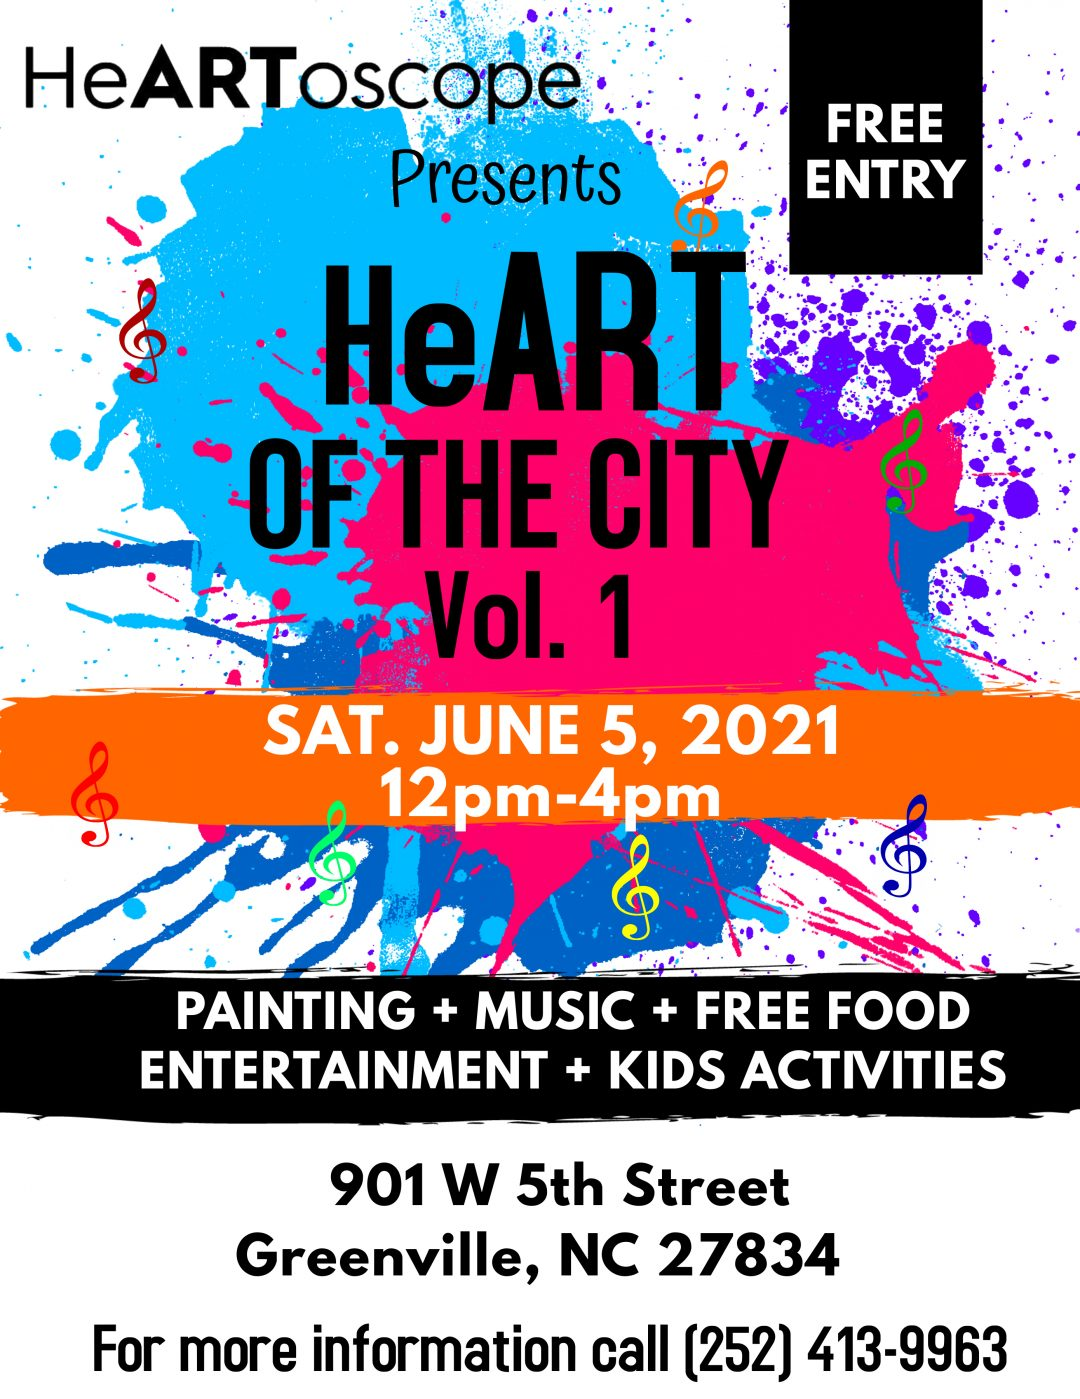 Heart of the city flyer. Sat June 5th, 2021